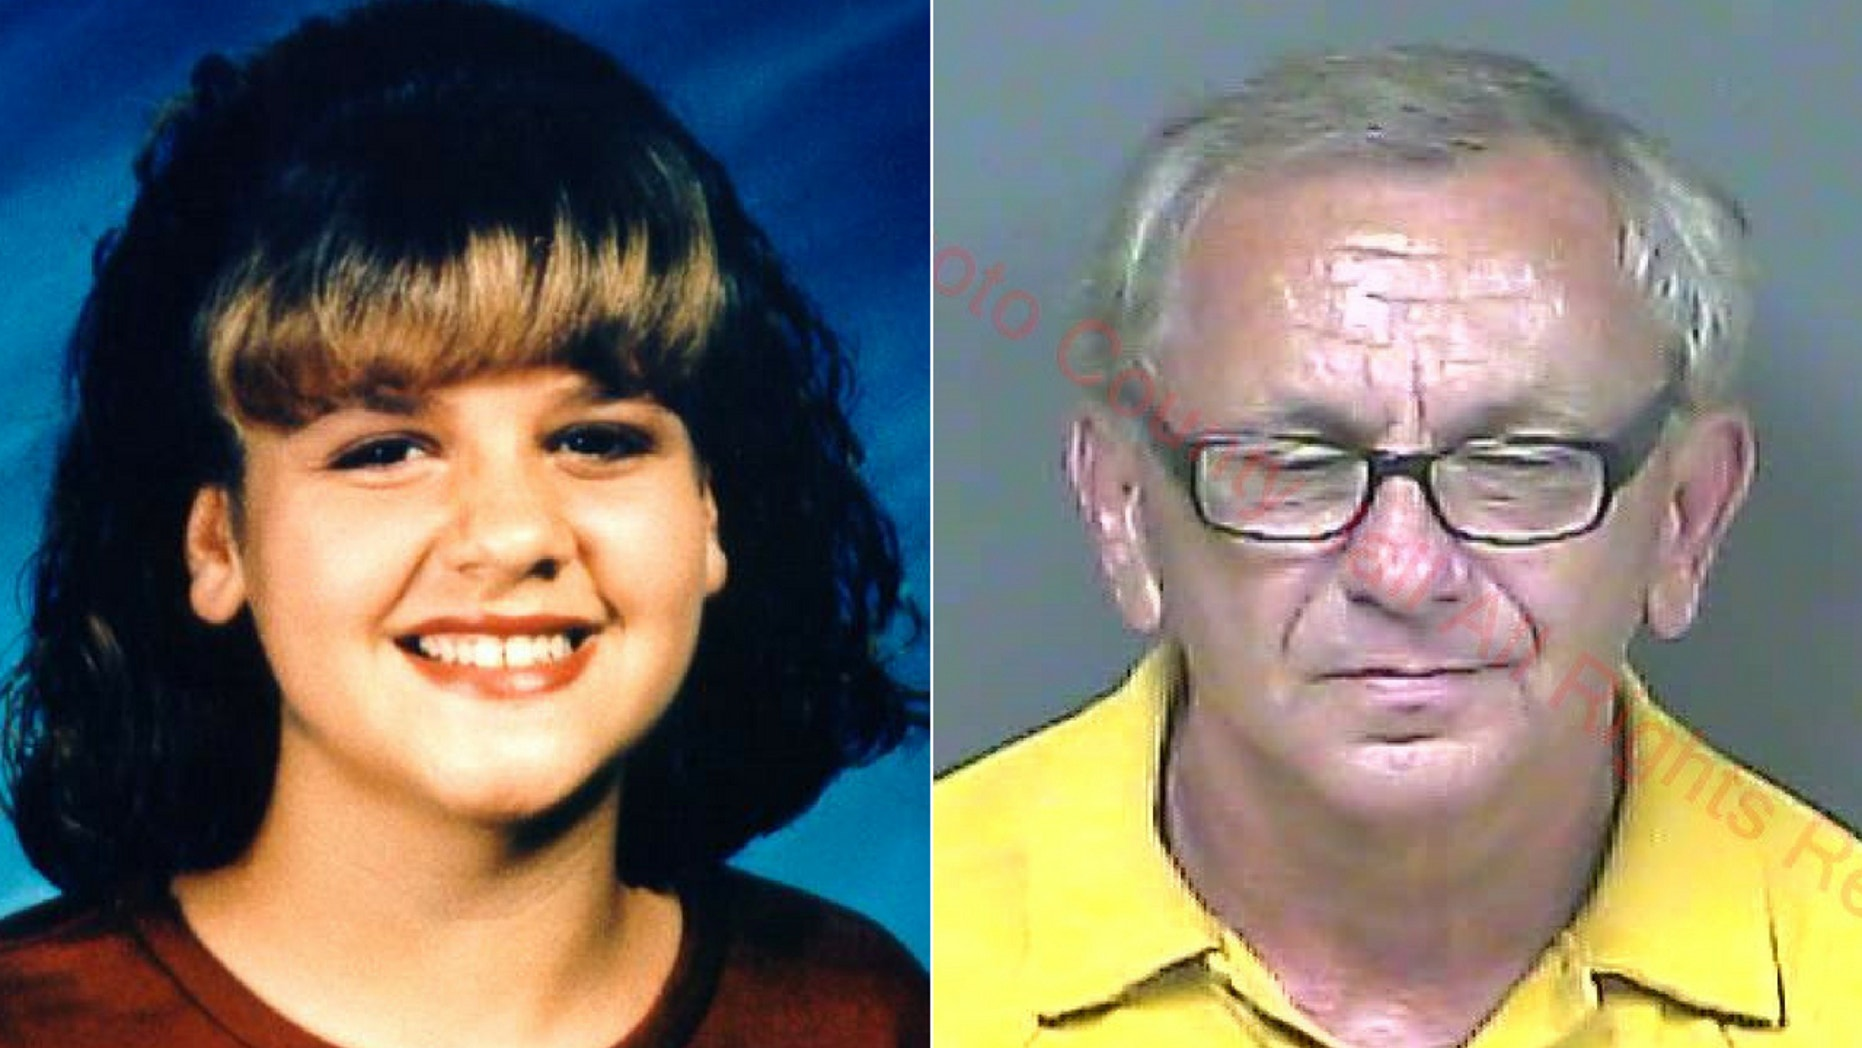 Finis Ewin Hill, 66, right, was named a suspect in the disappearance of Cayce McDaniel, left.